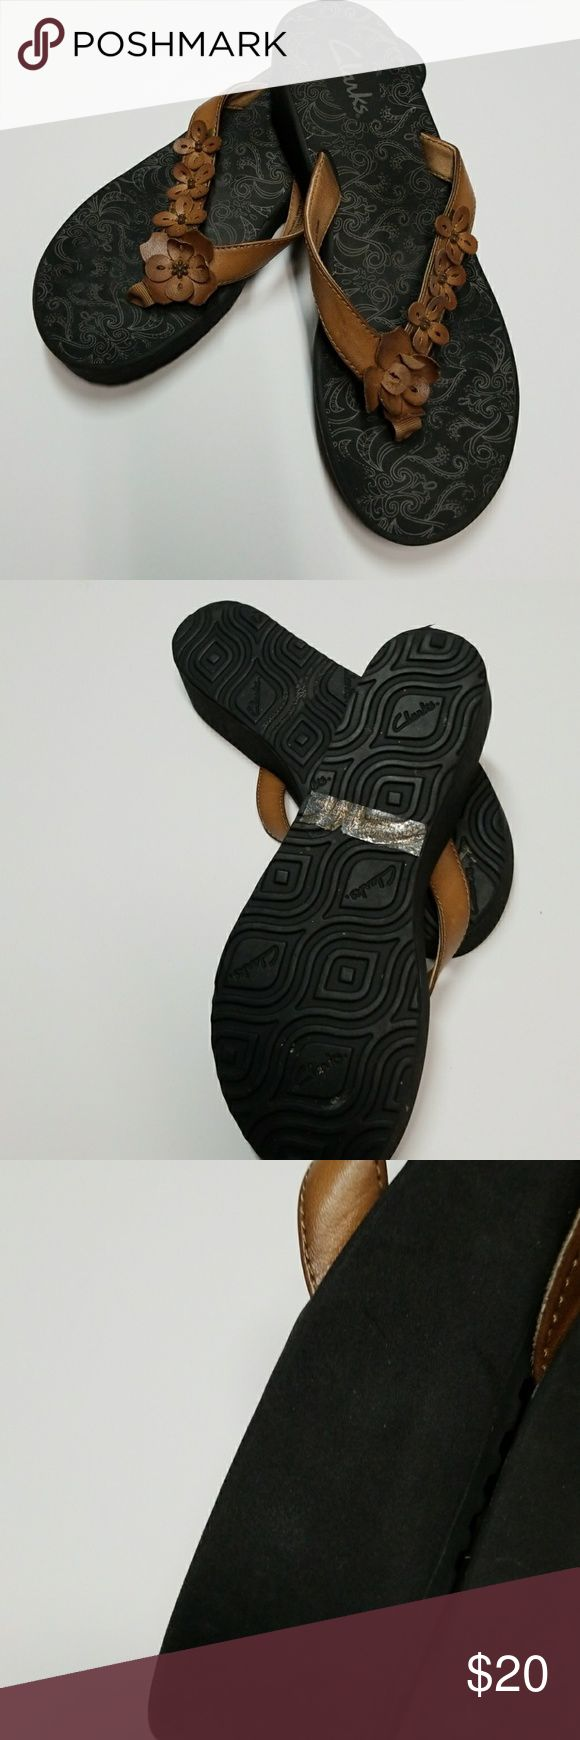 """Clarks Flip Flops Brown Size 9 Beach Pool Shoes Clarks Flip Flops Brown  Size 9  Beach Pool Knock around Shoes Well made lined Straps Excellent Condition Heel Approx  1.5 """" back and 1"""" front Shoes"""